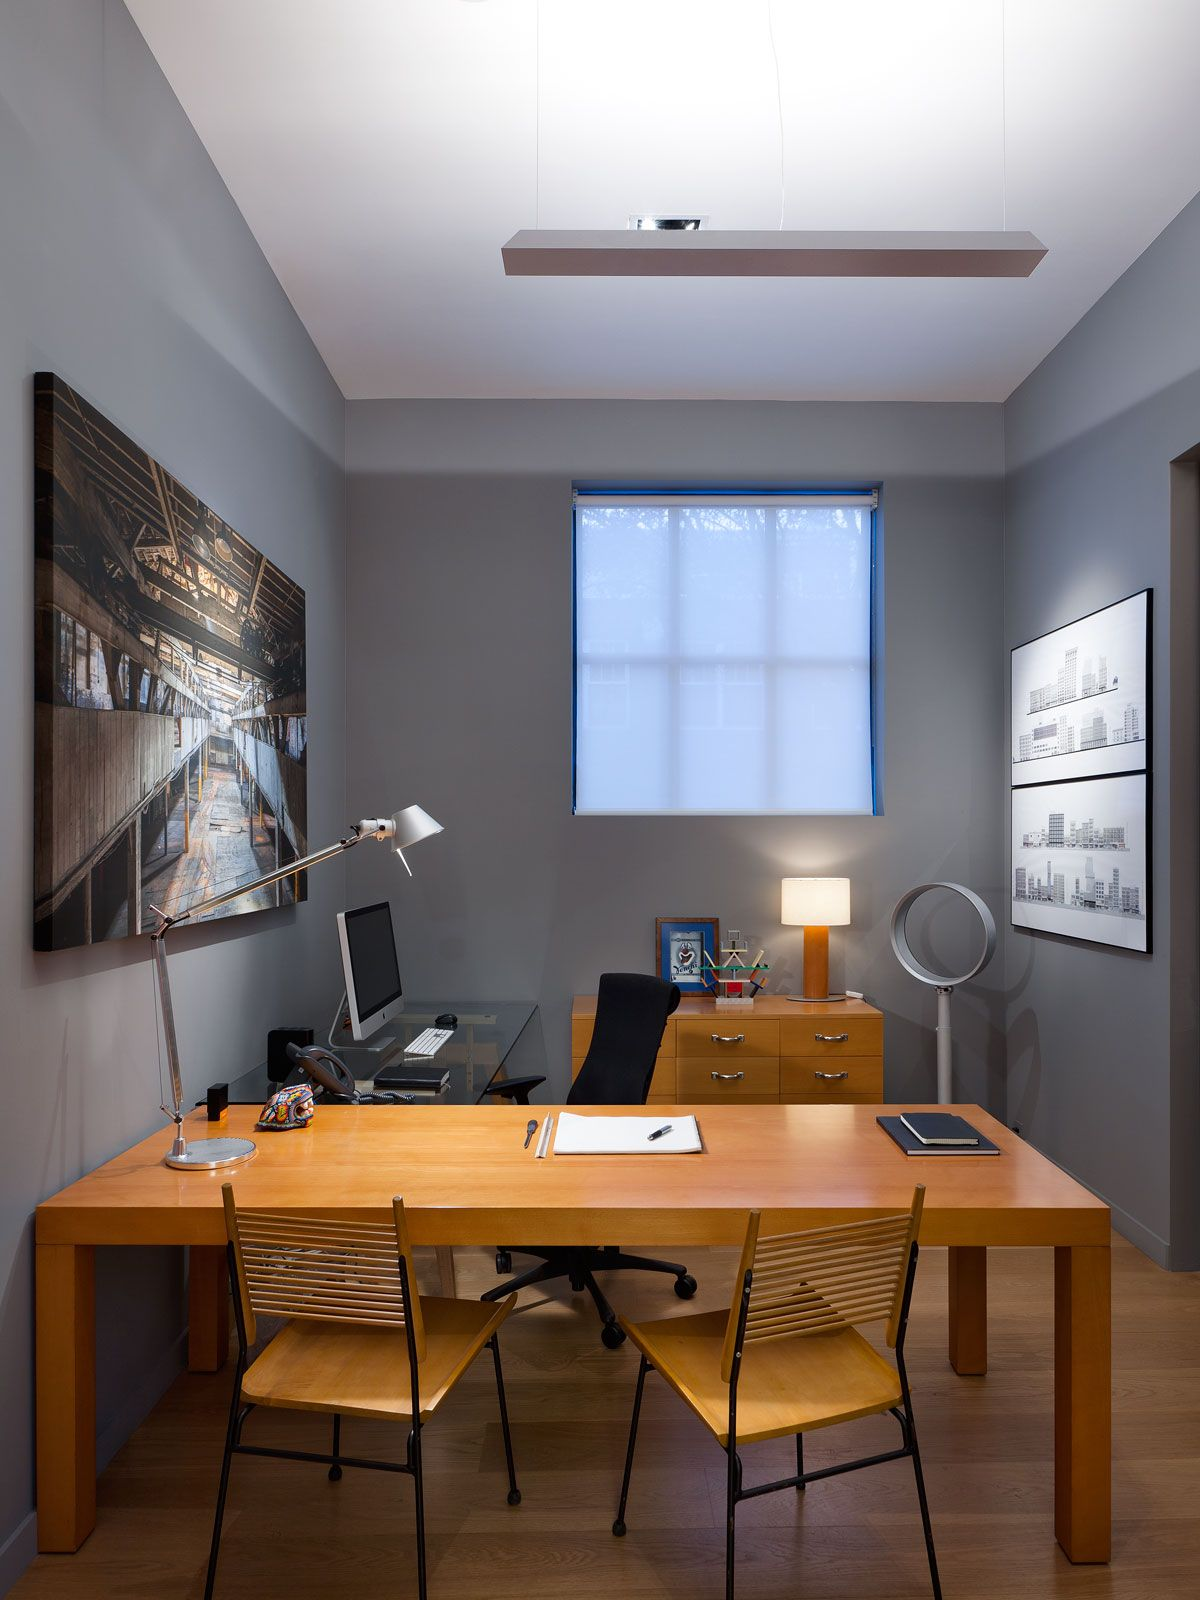 5 Stunning Garage Conversions Garage office, Home office